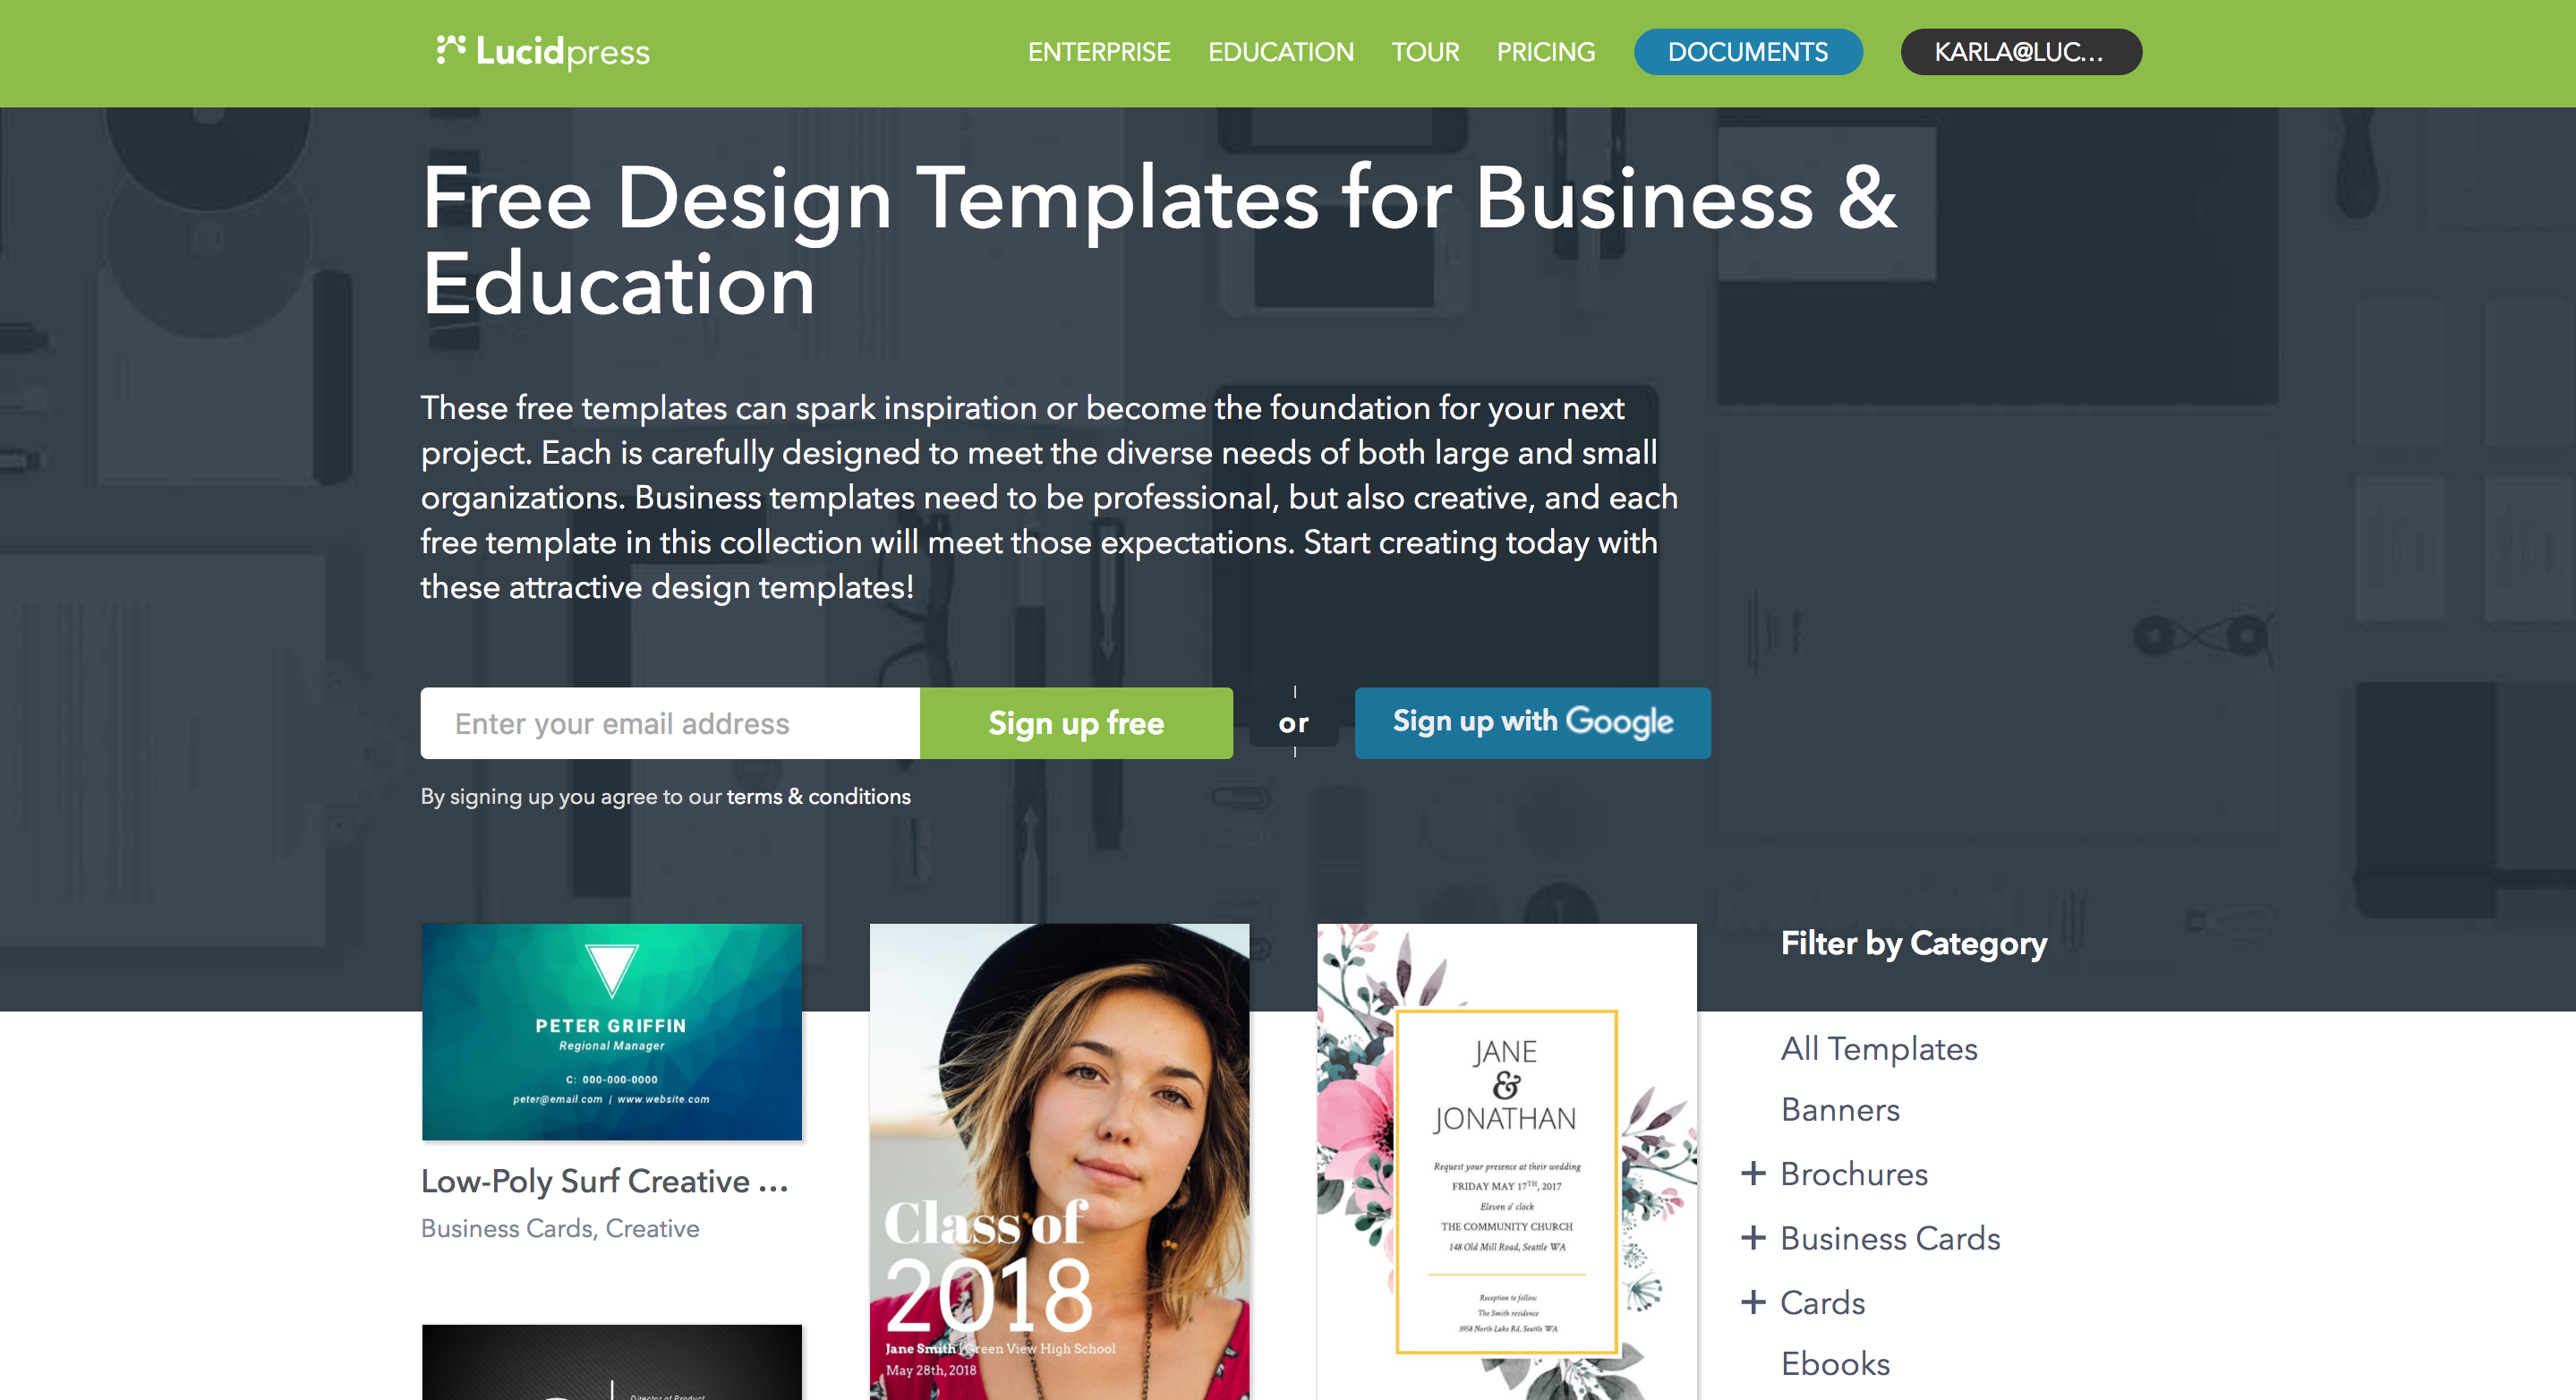 Lucidpress free templates